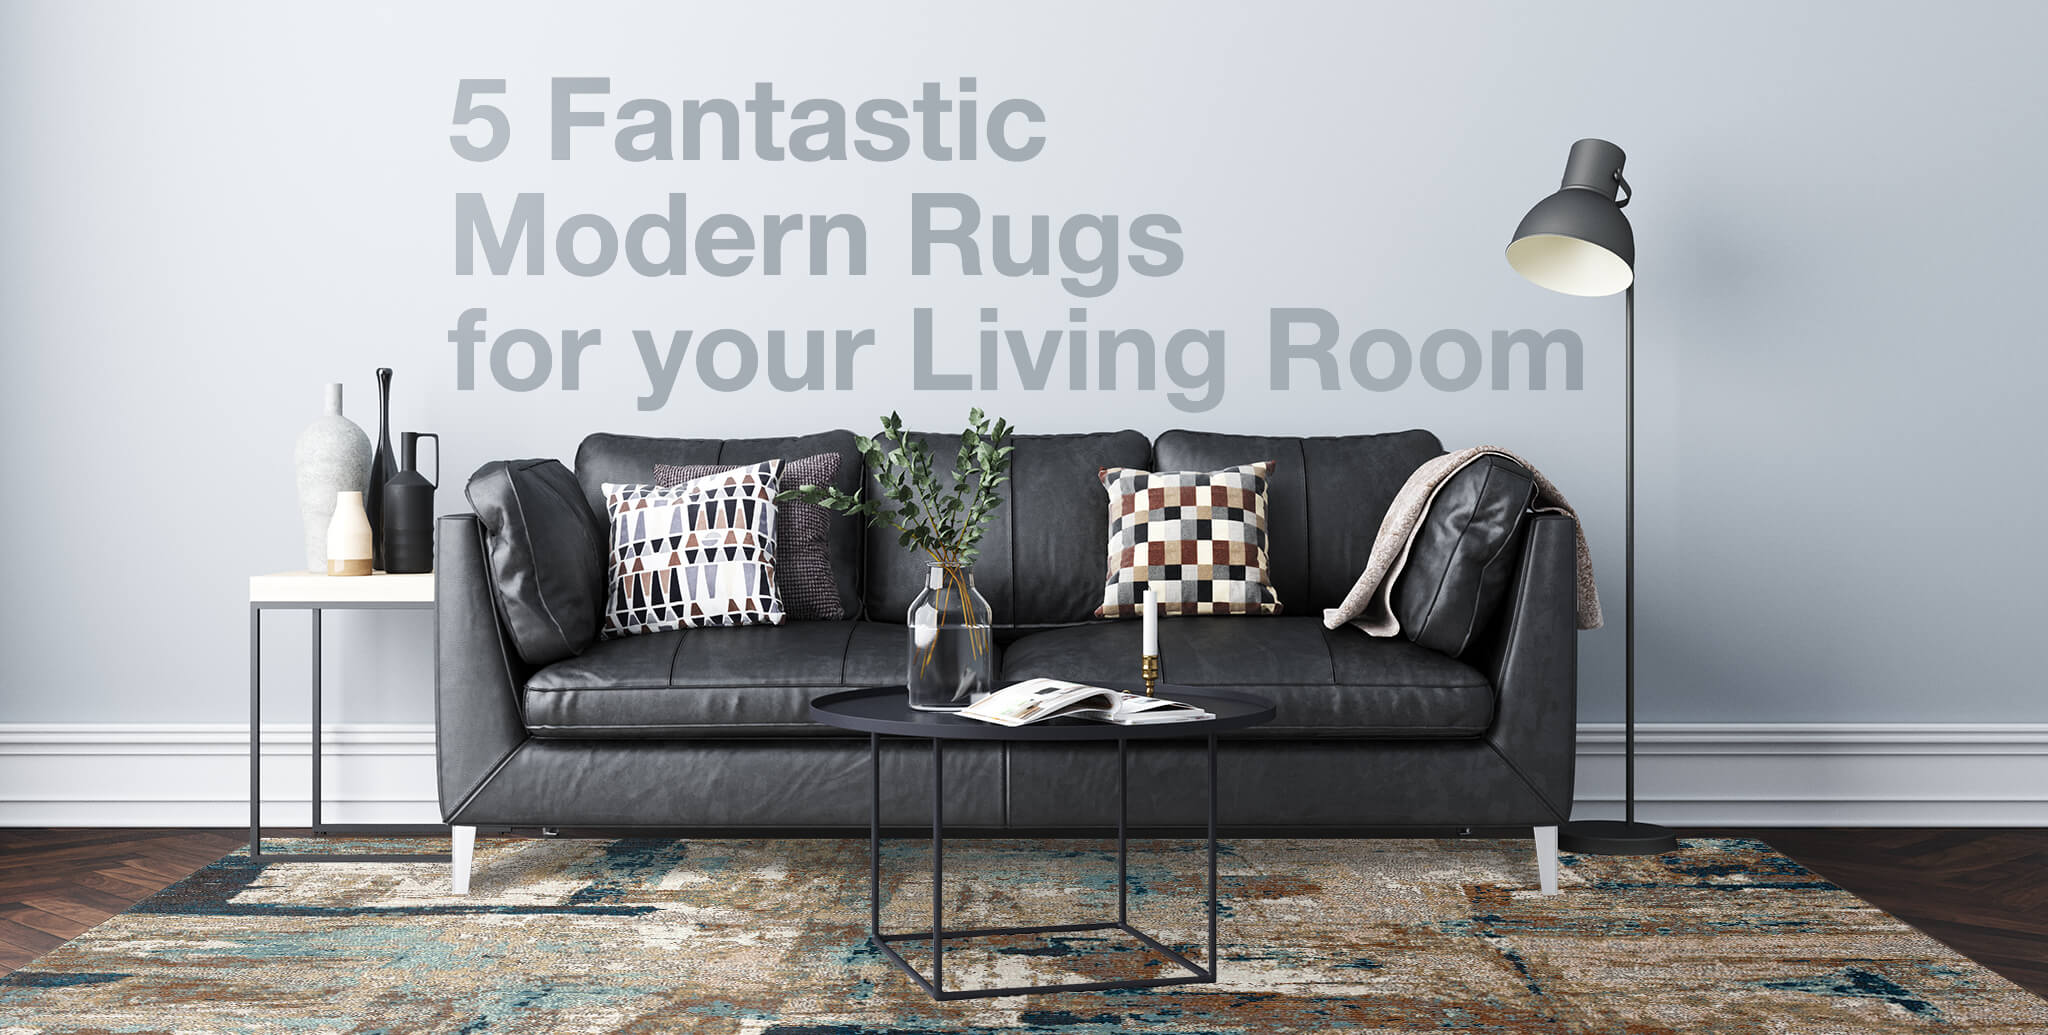 5 Fantastic Modern Rugs for your Living Room